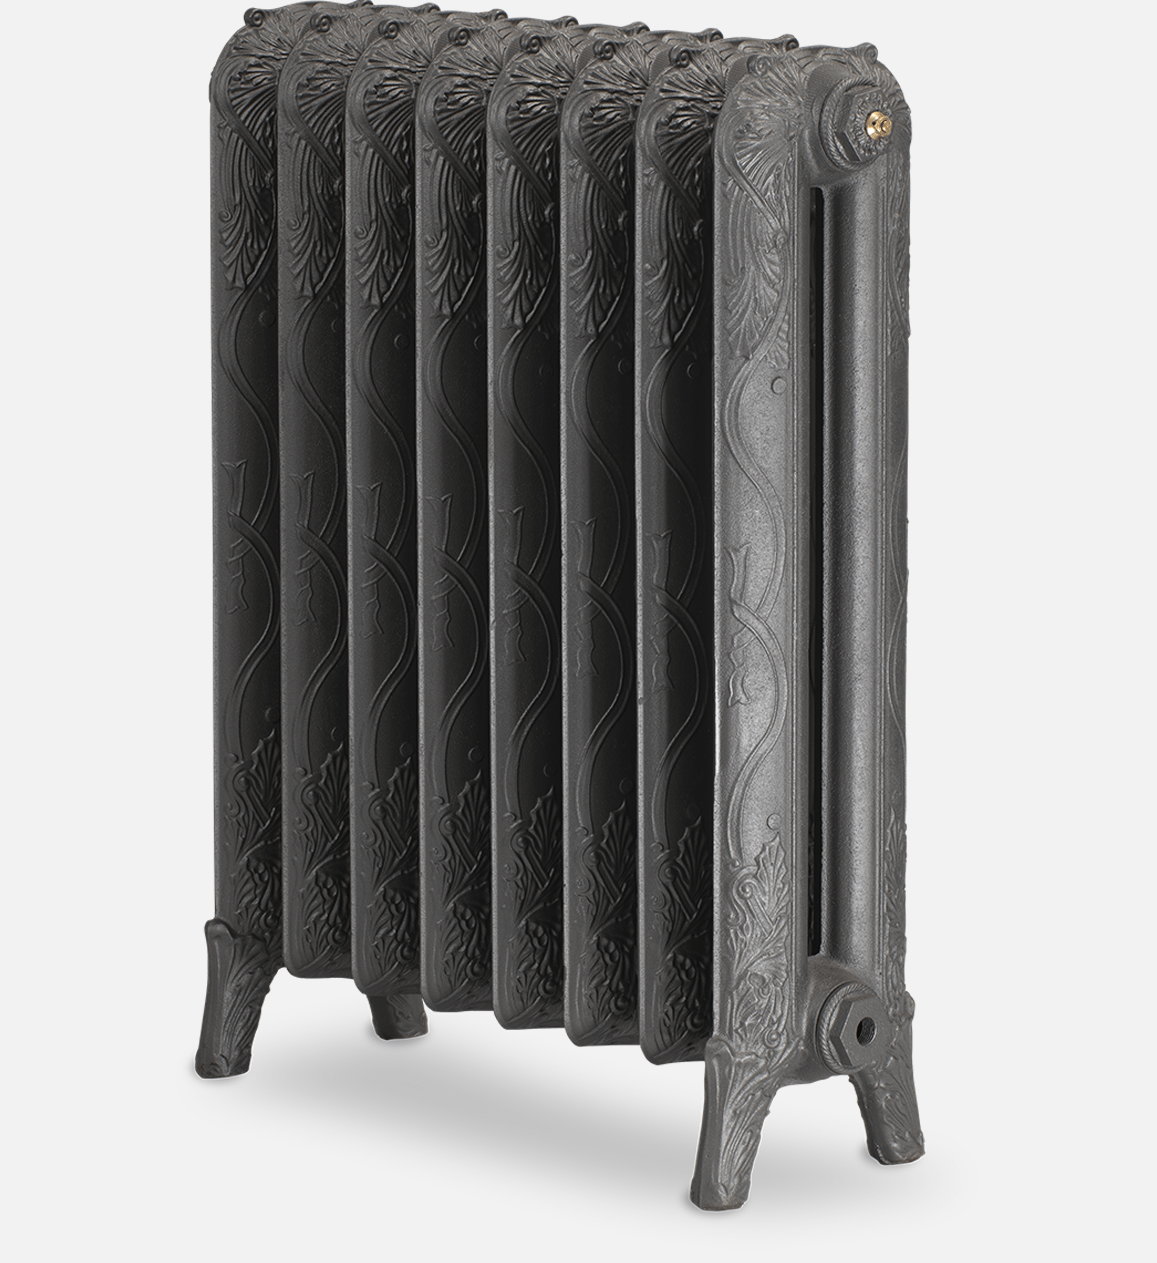 Paladin Piccadilly Ribbon Pattern Cast Radiator